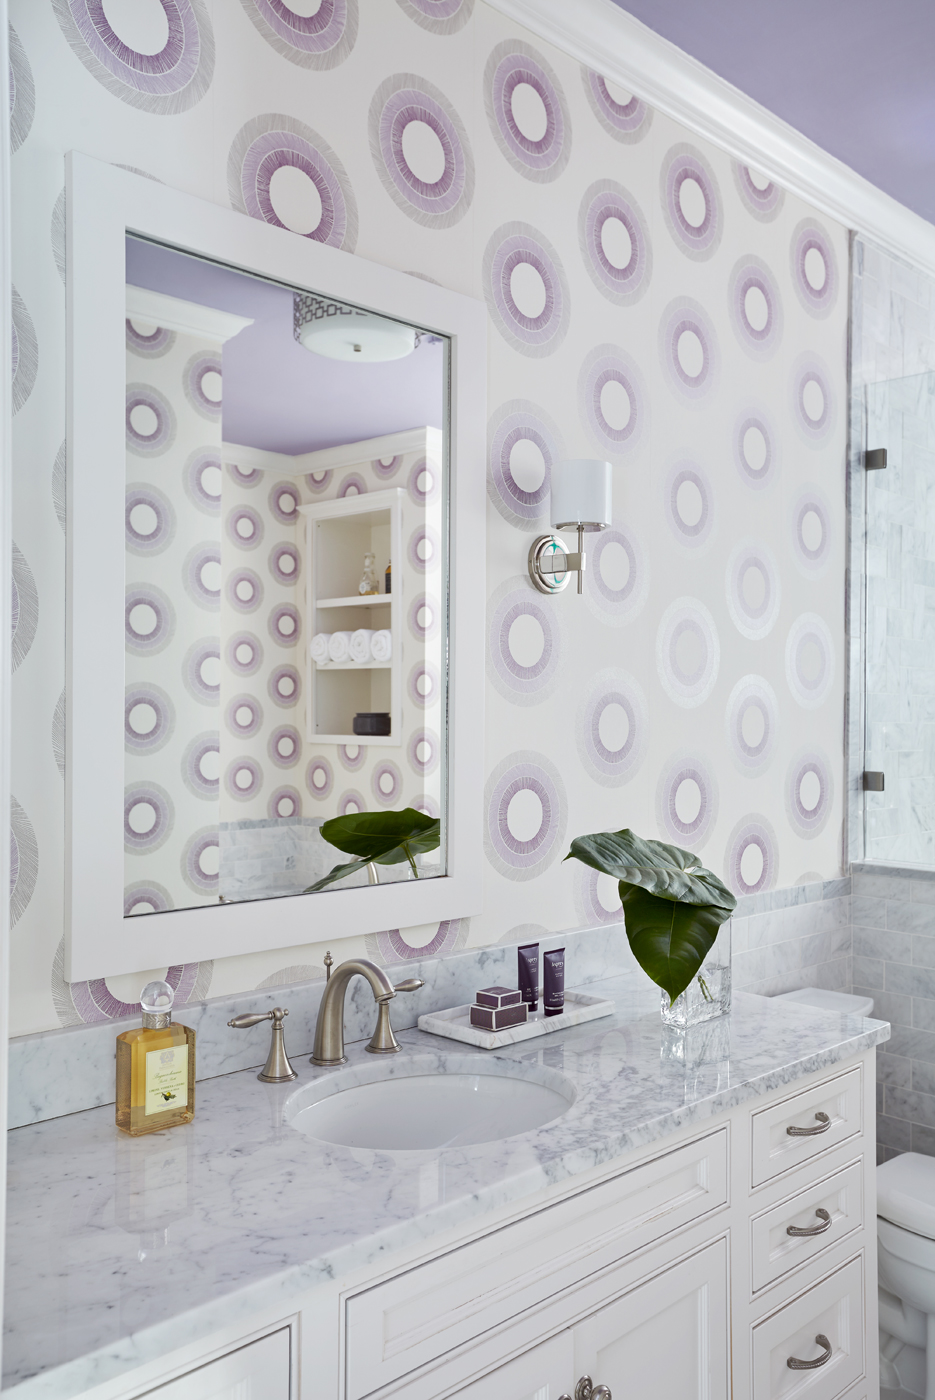 Bathroom wallpaper with lavender concentric circles on ivory field in Osborne & Little Parure pattern | Savage Interior Design